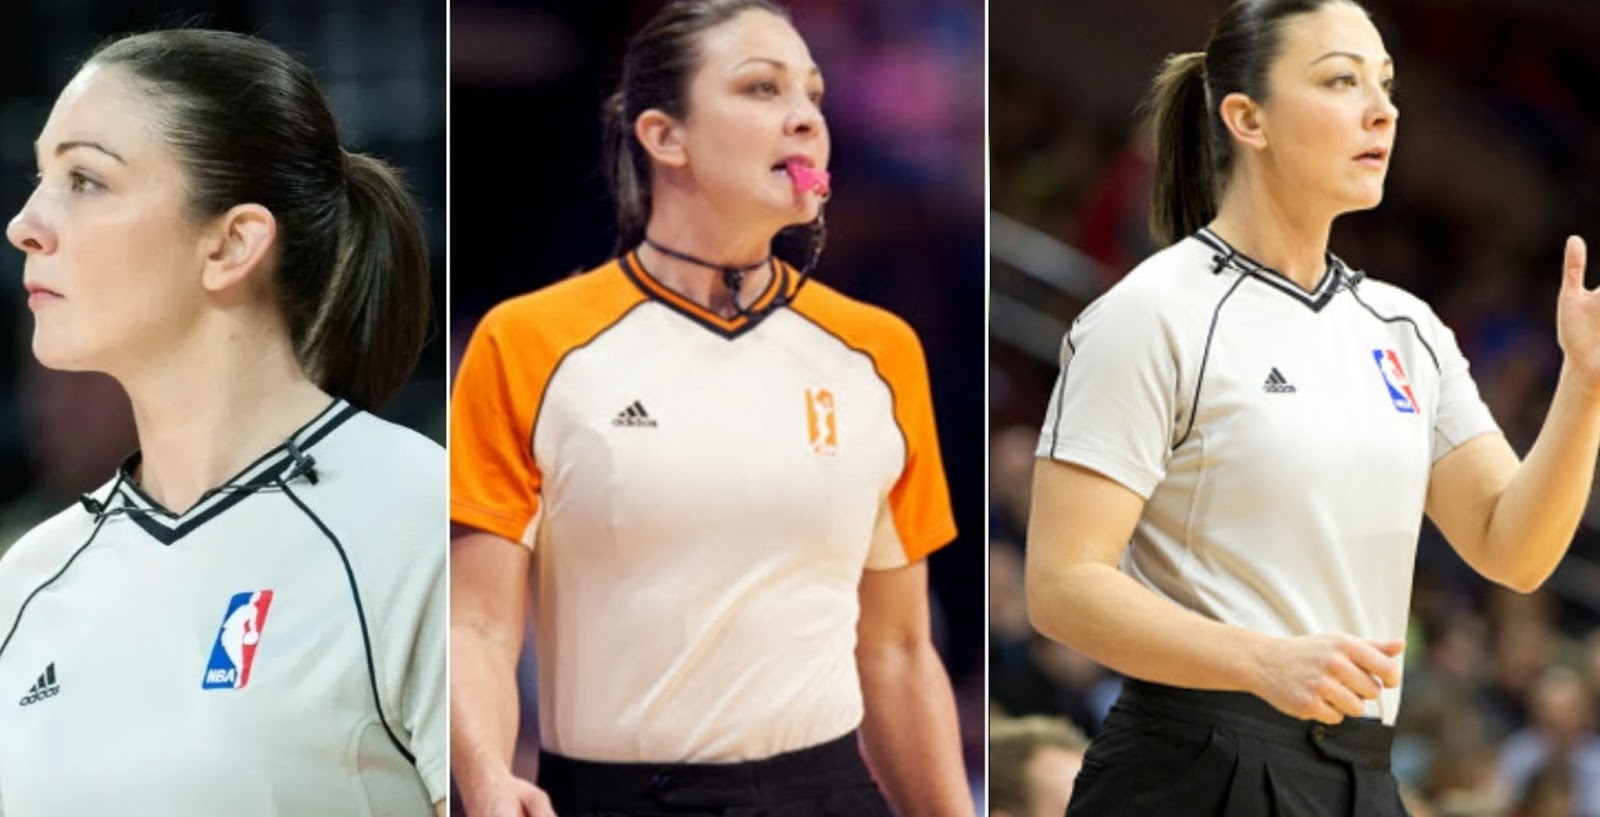 famous beautiful women in NBA as referee Holtkamp